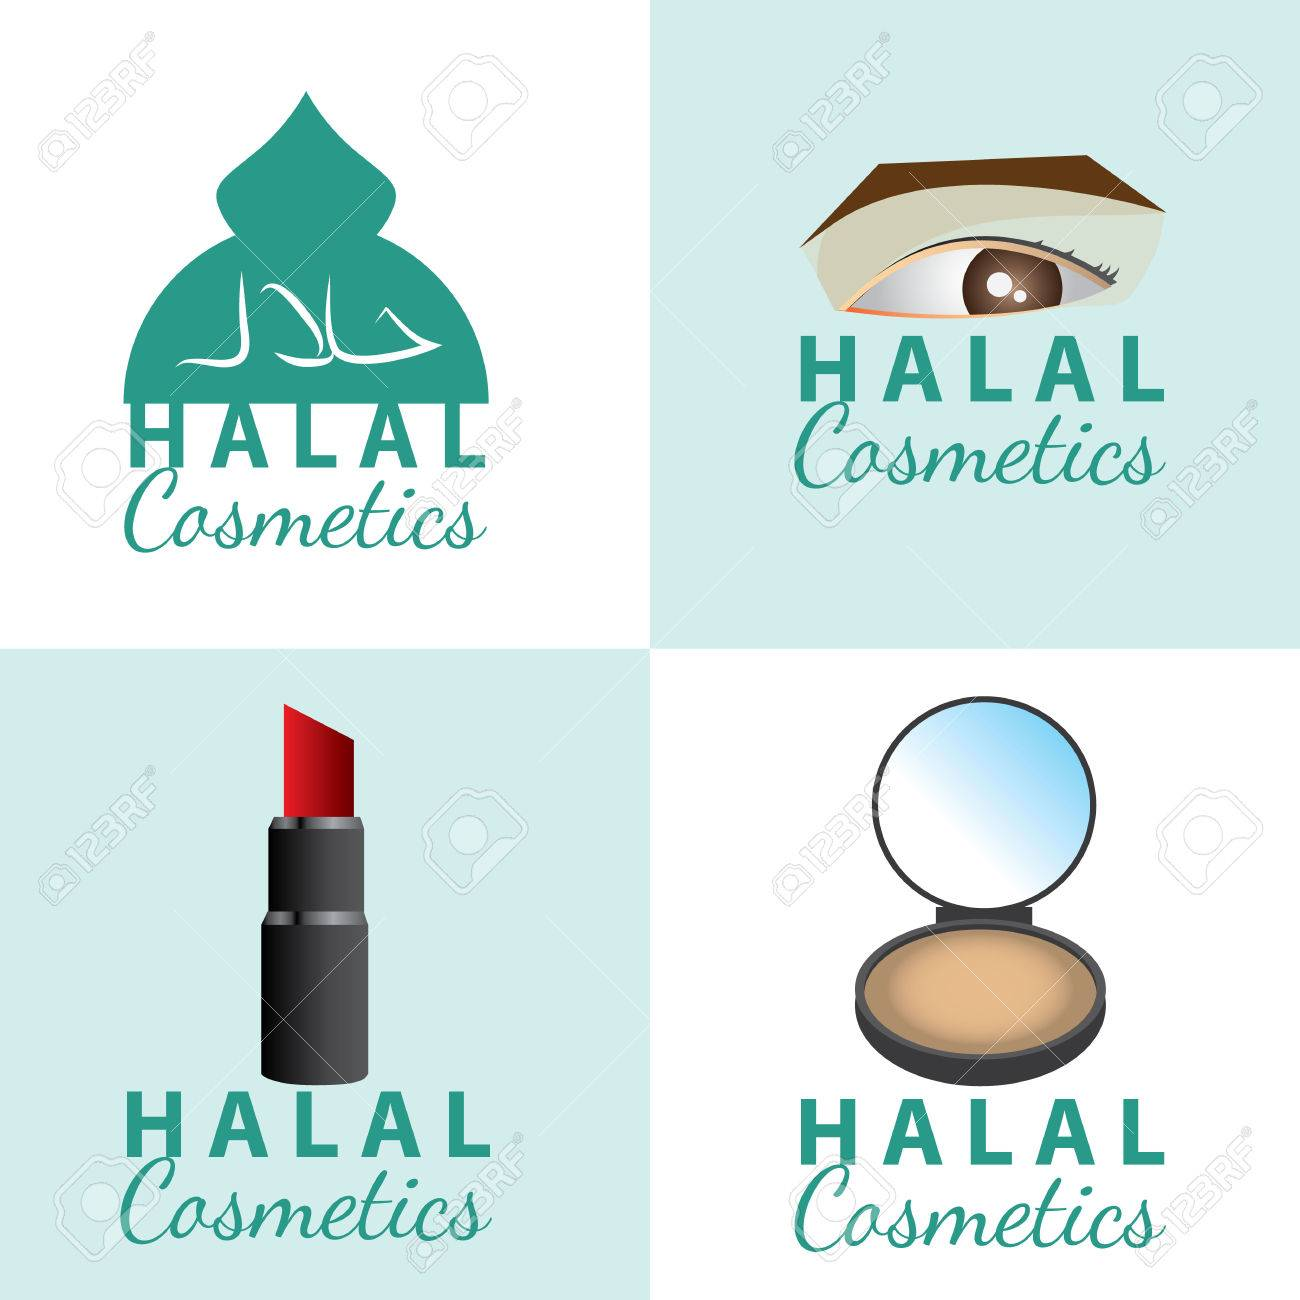 set of certificate of halal (permissible) cosmetics icon  vector